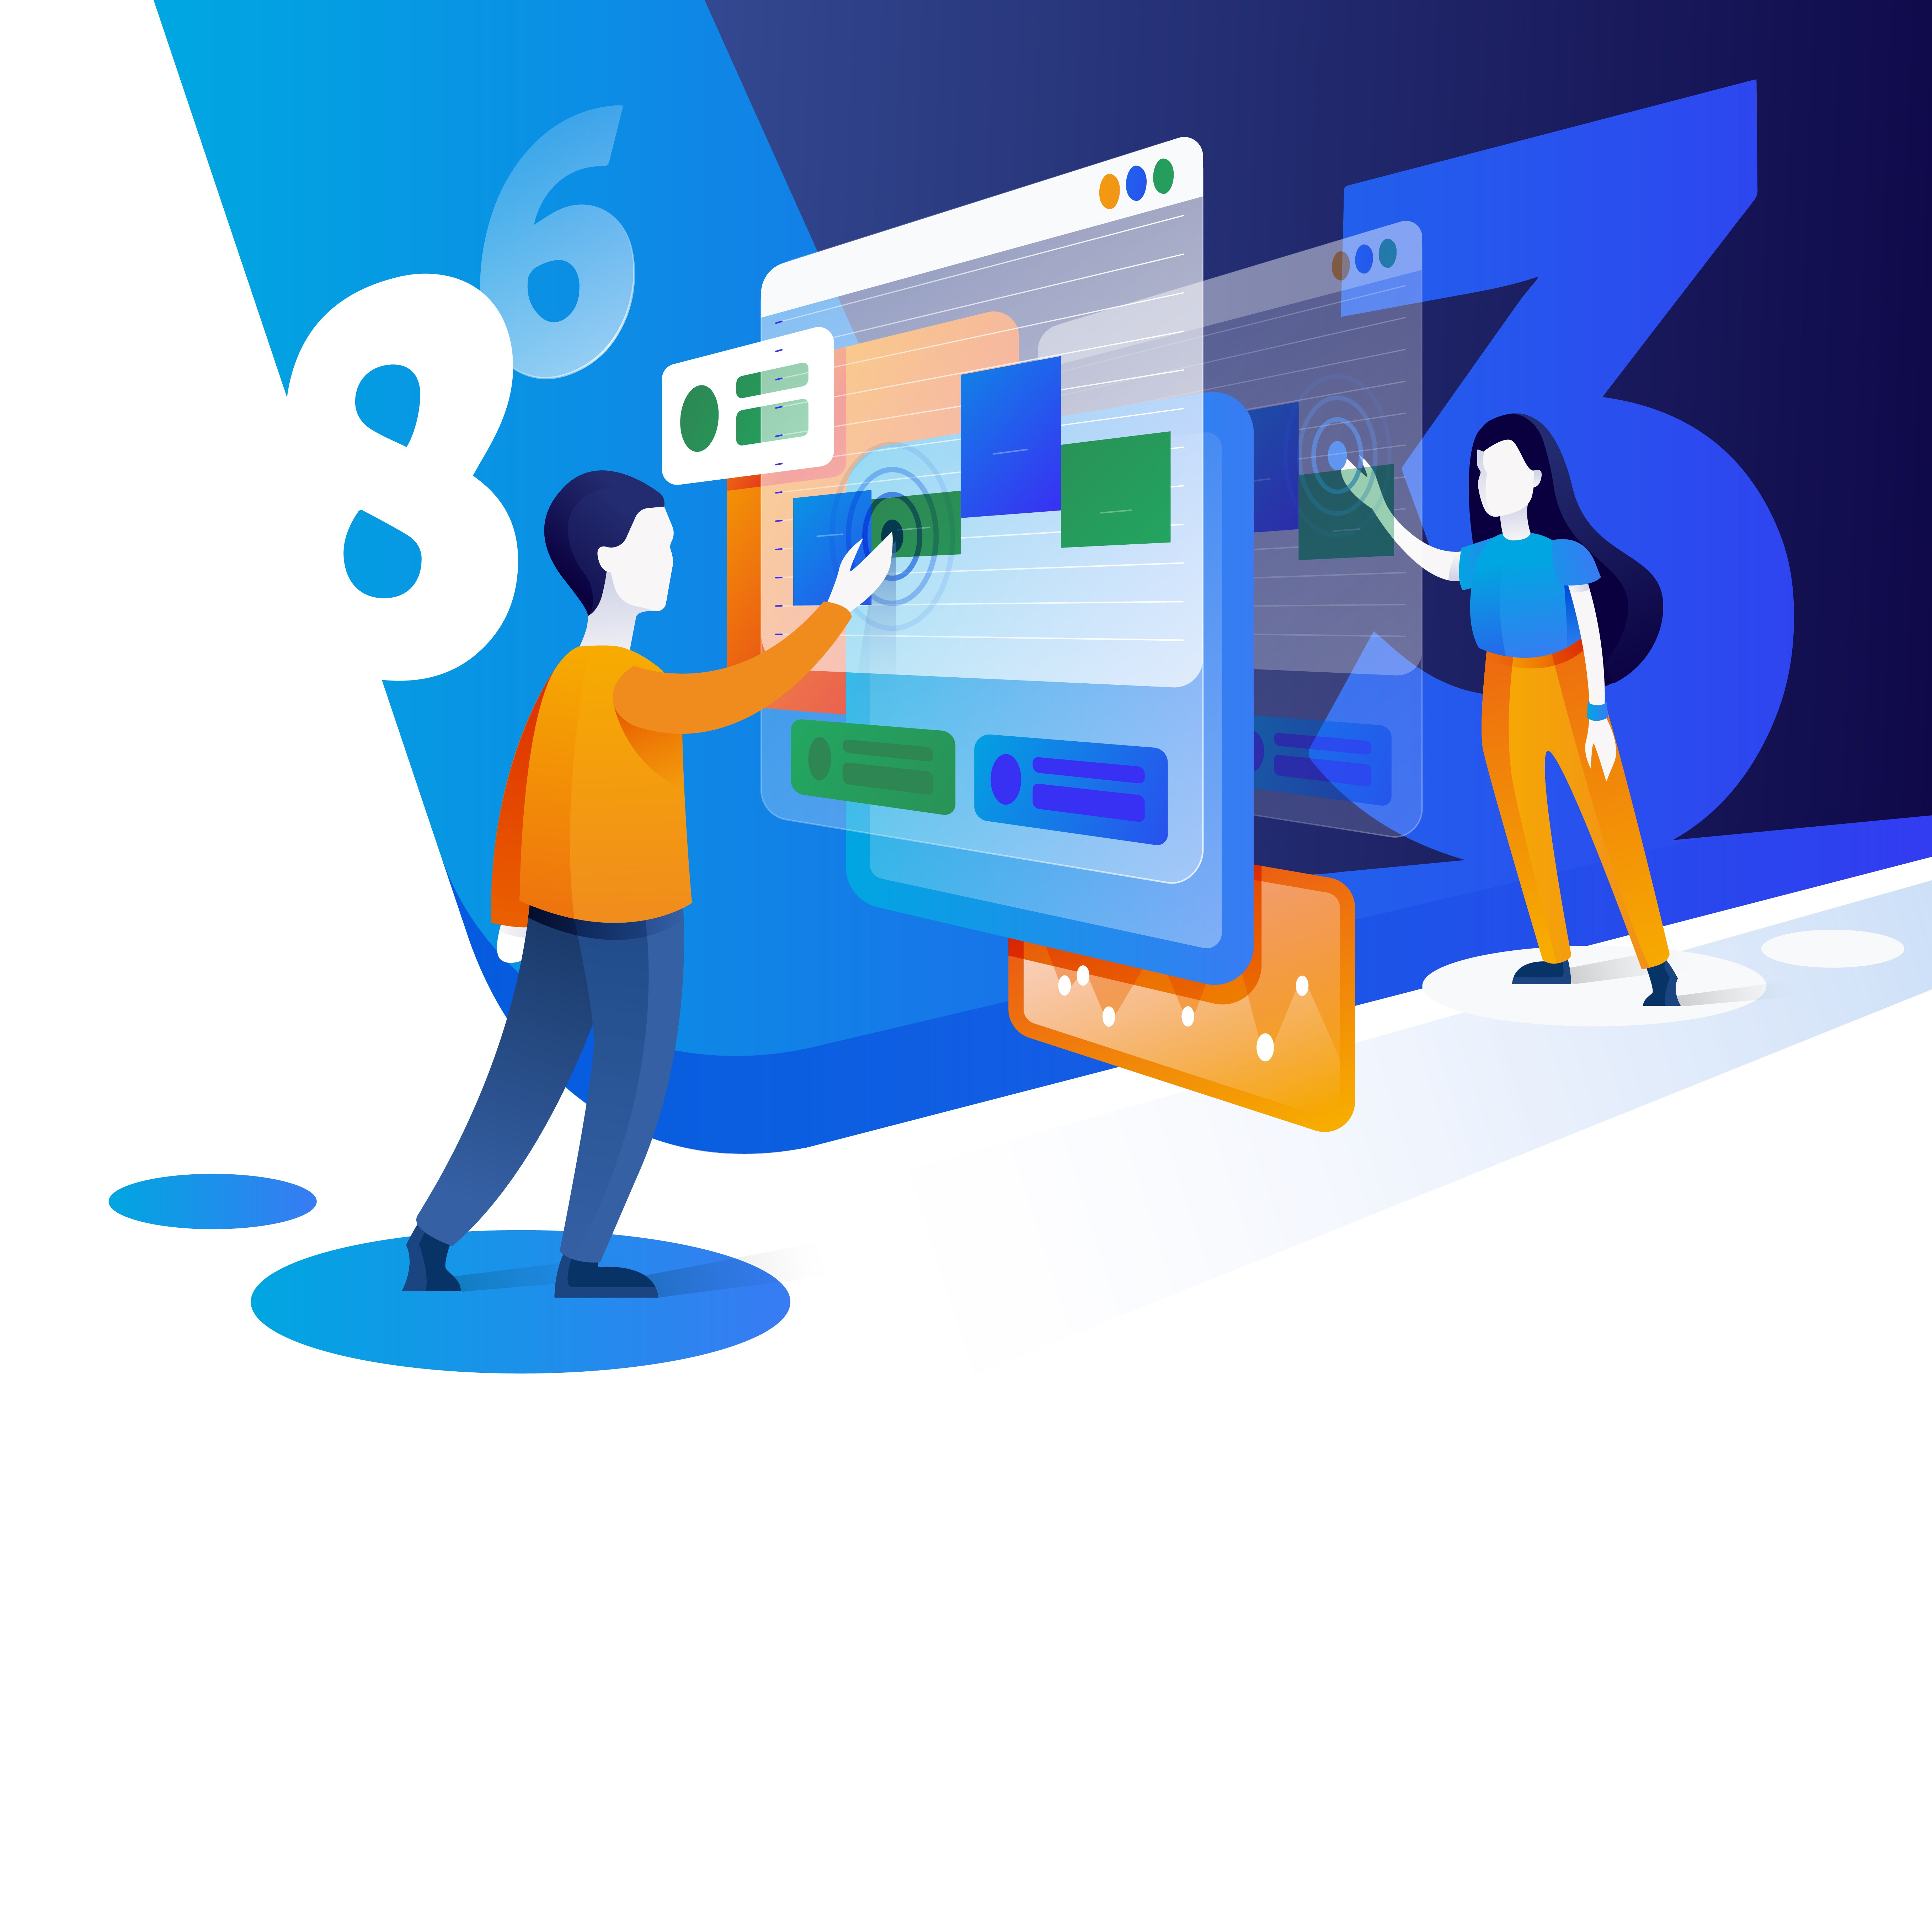 Create a web design that illustrates People, numbers and compensation